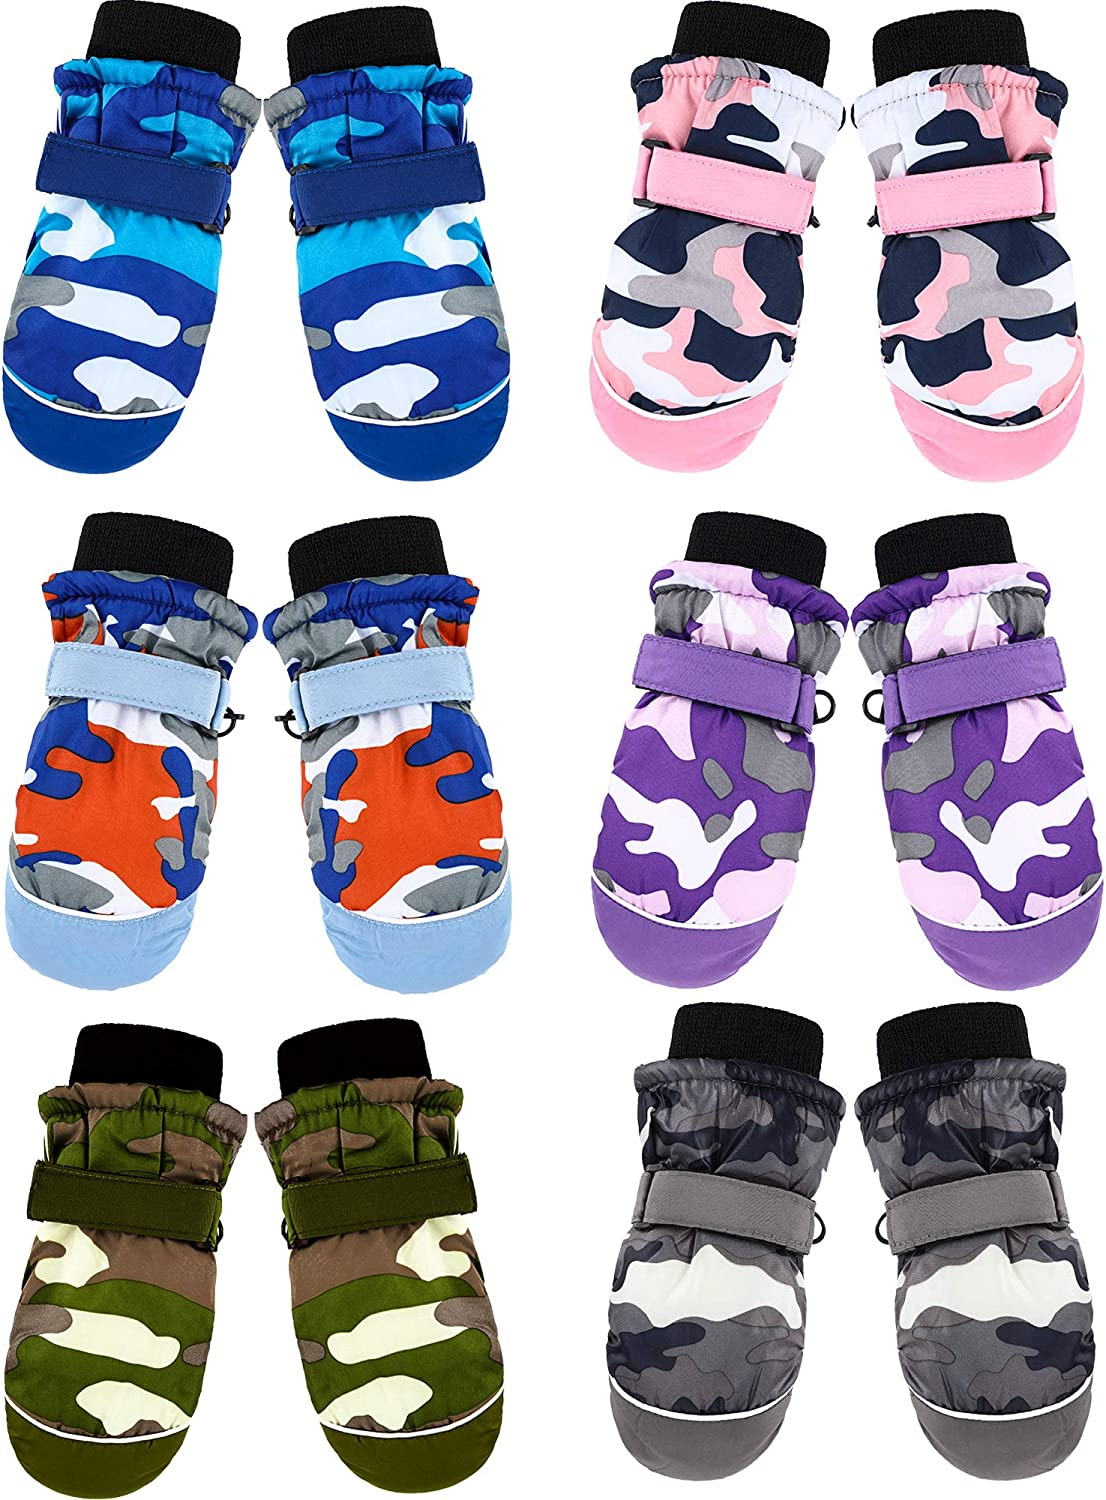 6 Pairs Kids Winter Snow Mittens Waterproof Warm Ski Gloves Unisex Camouflage Gloves for Cold Weather Children (3-5 Years Old)